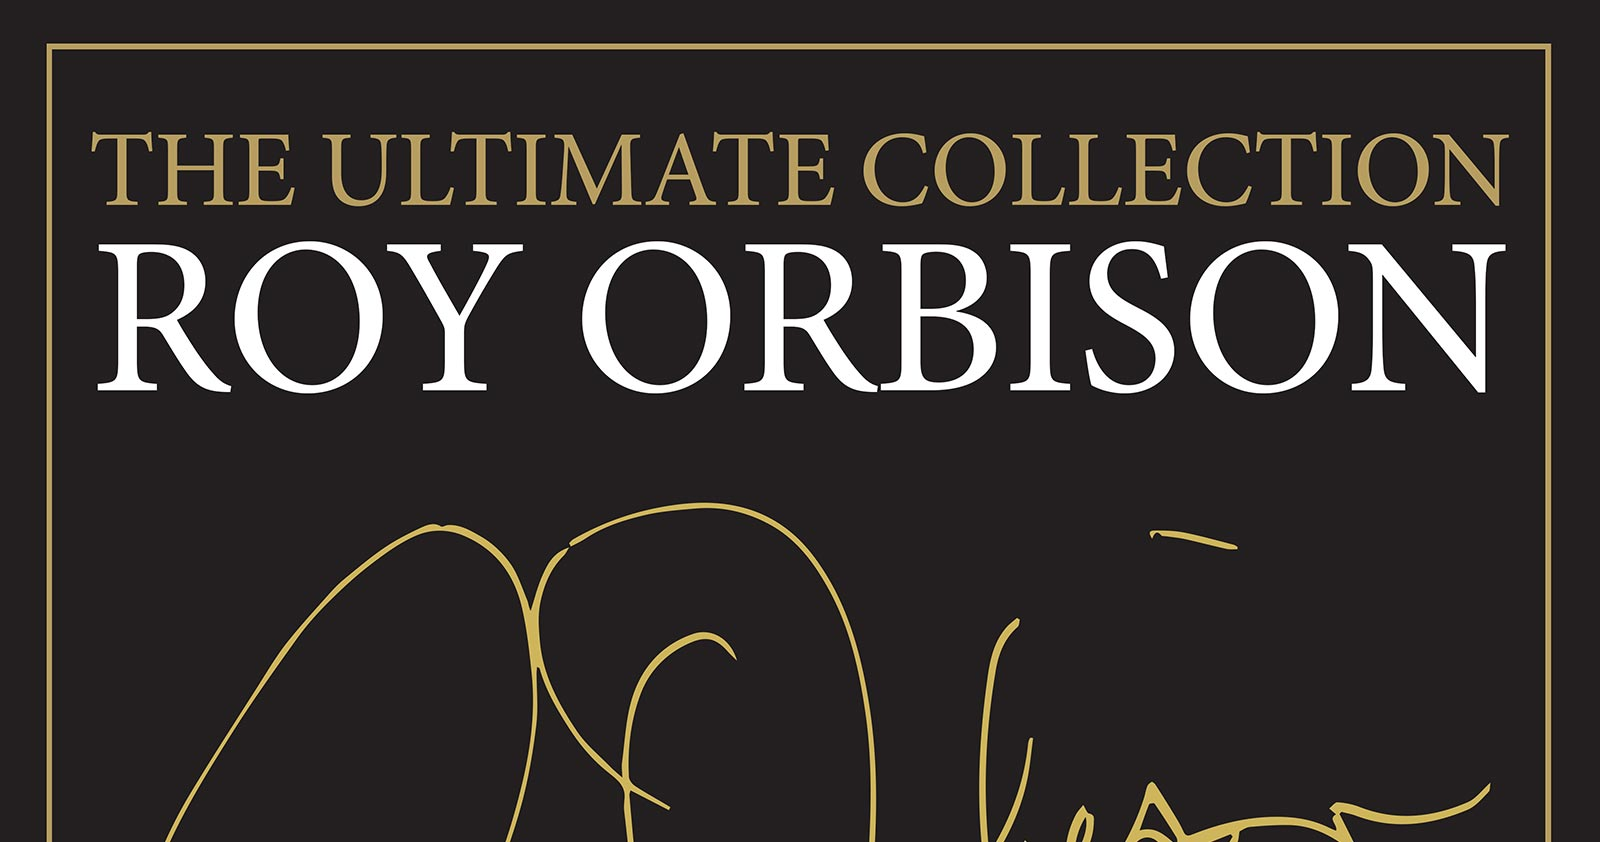 'The Ultimate Collection' Marks The First-Ever Anthology of Roy Orbison